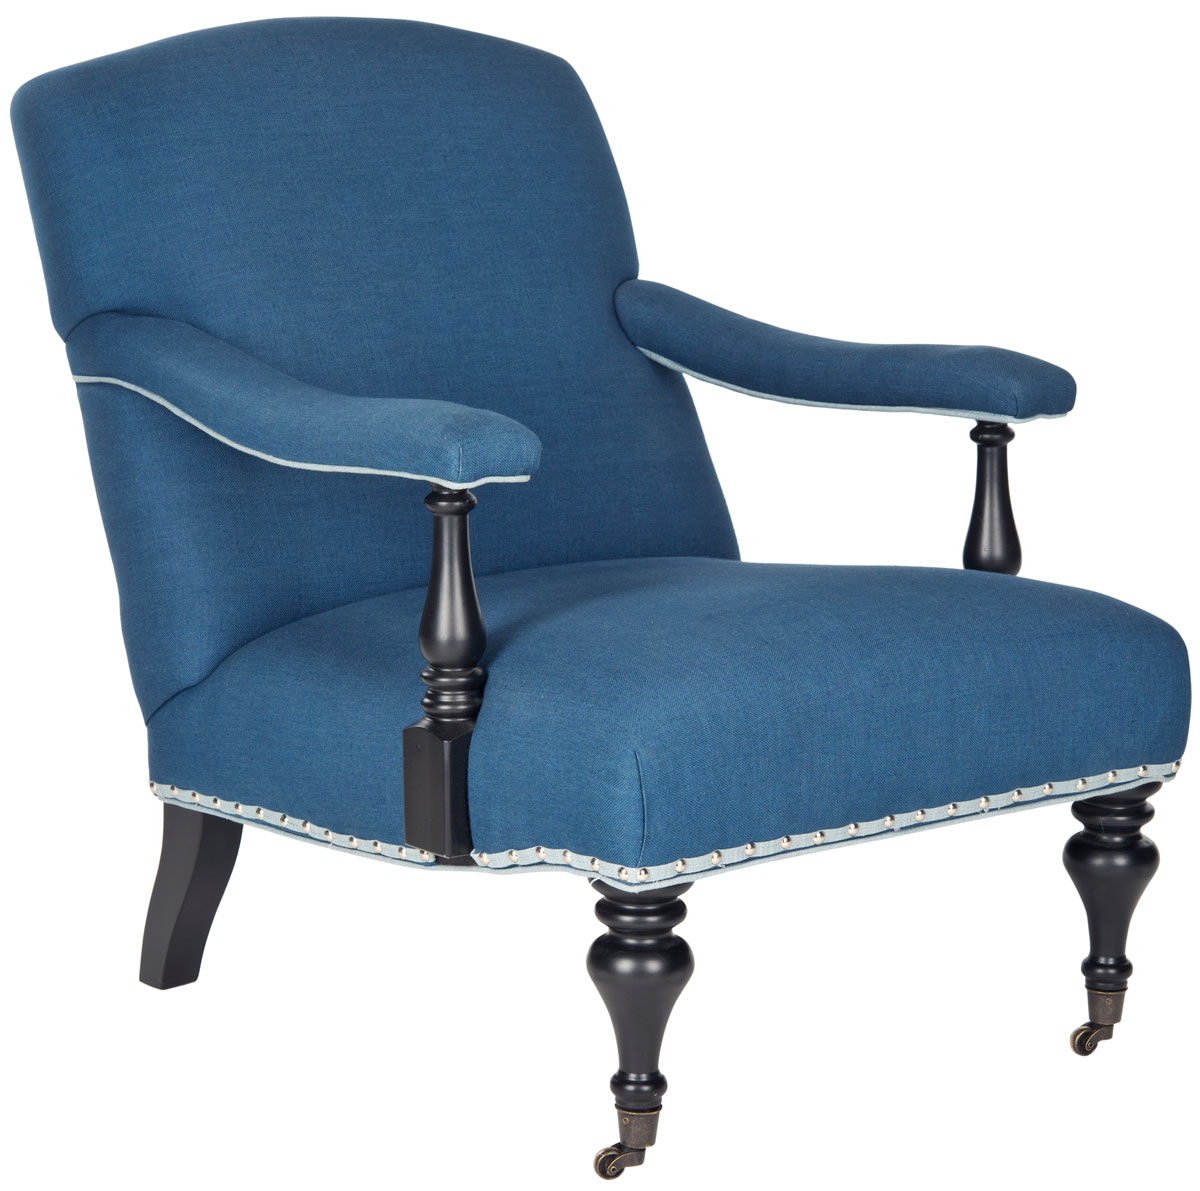 Blue Accent Chair With Arms Mcr4731a Accent Chairs Furniture By Safavieh